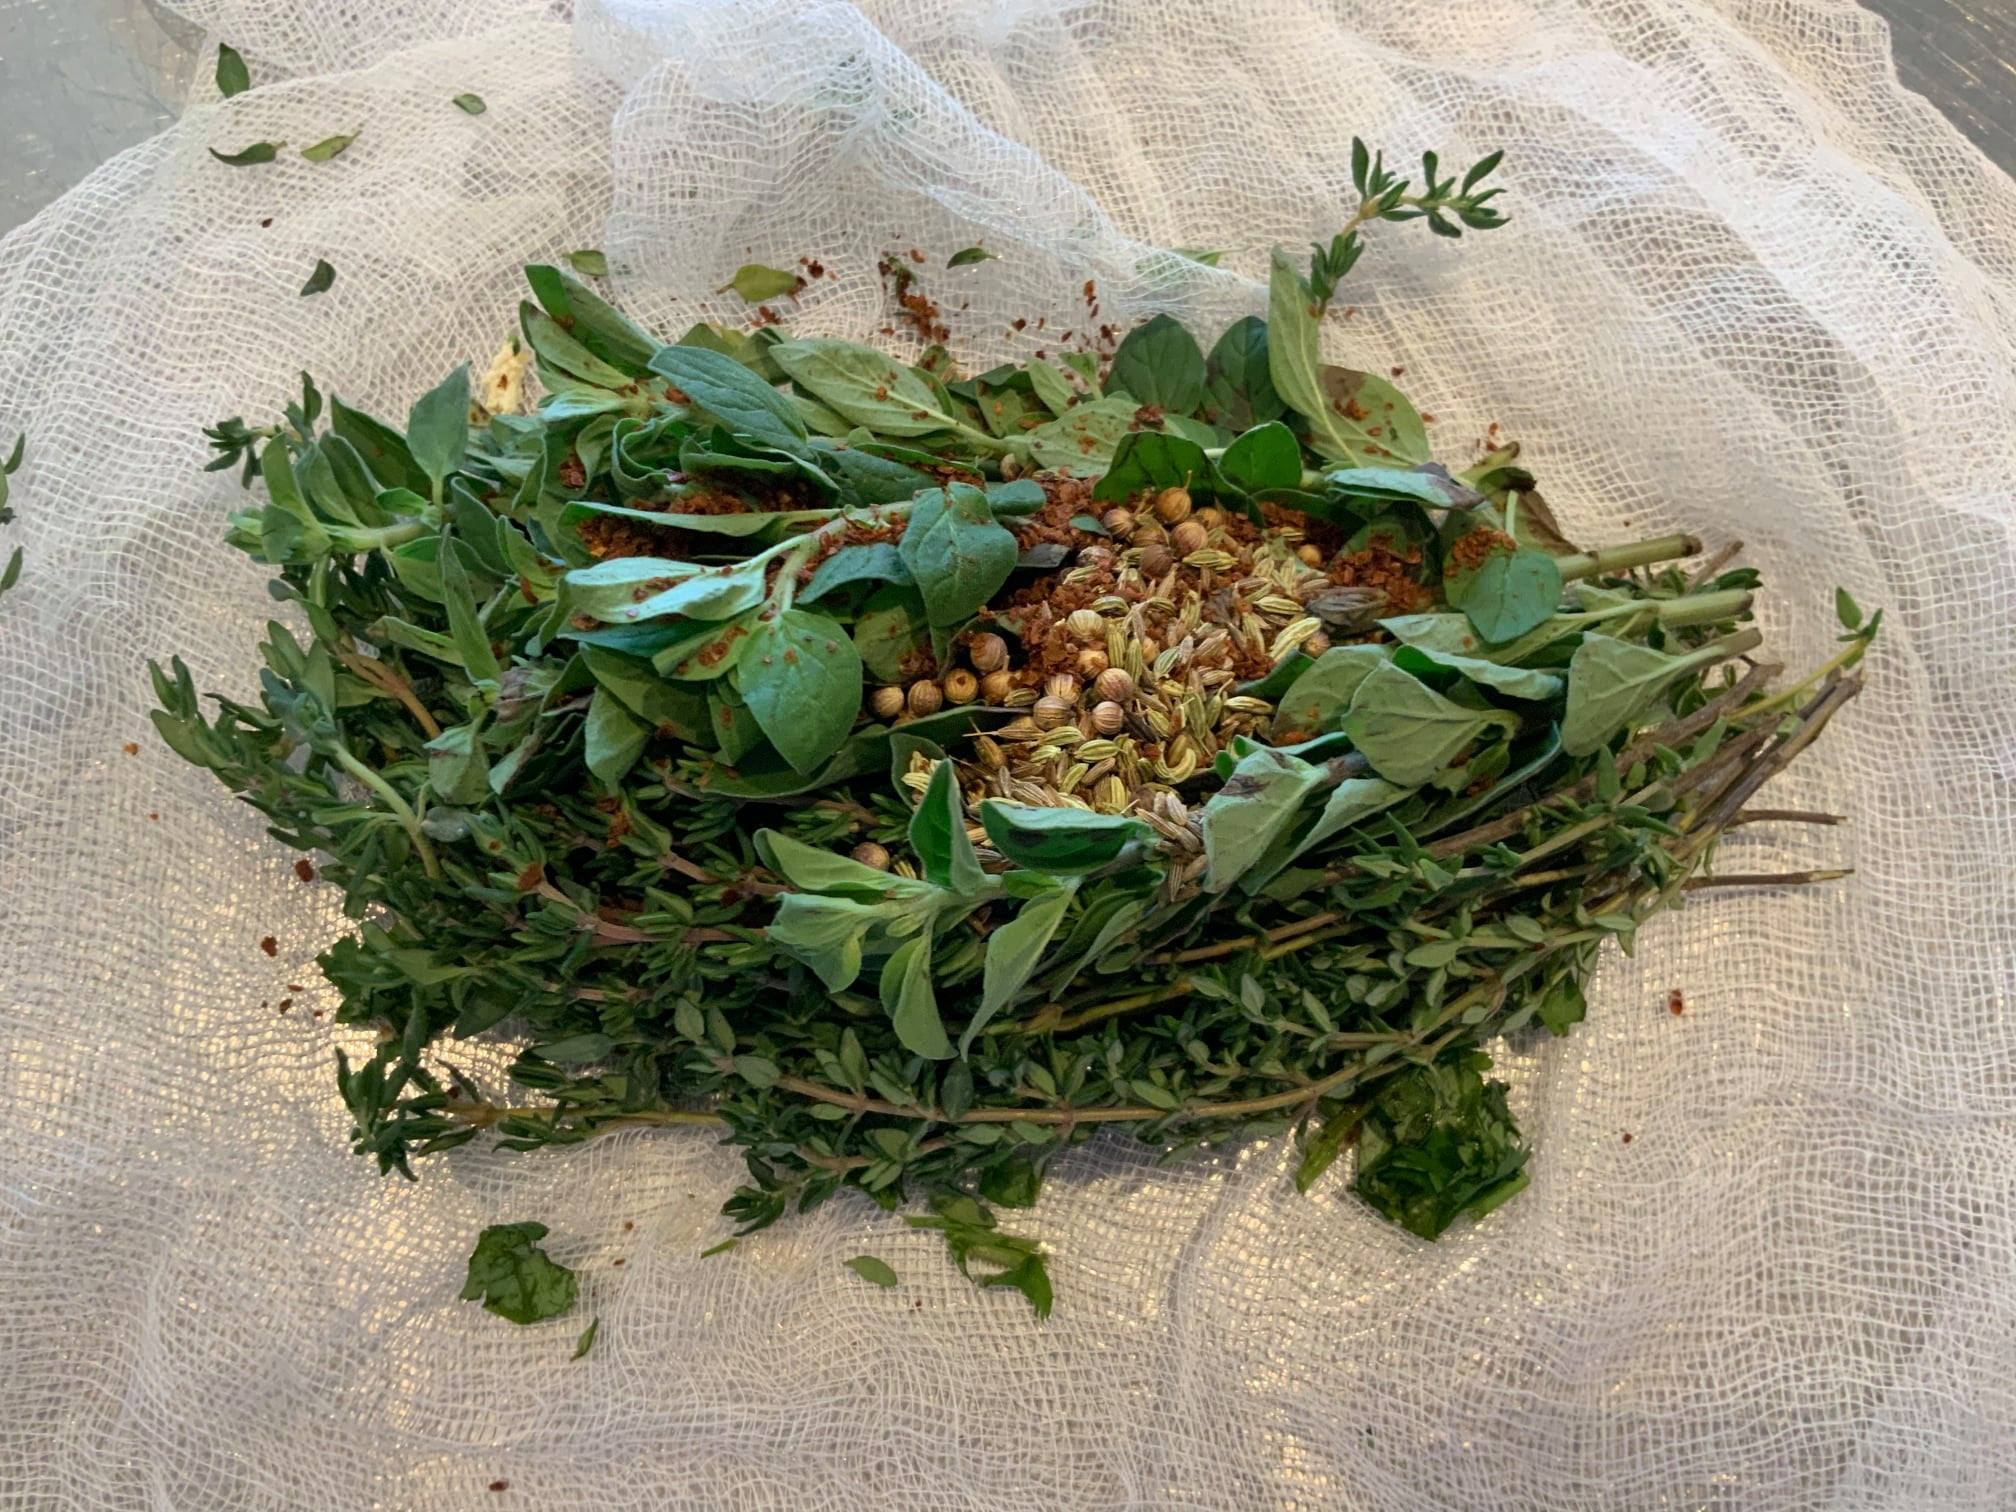 green herbs and roasted spices sit on cheesecloth